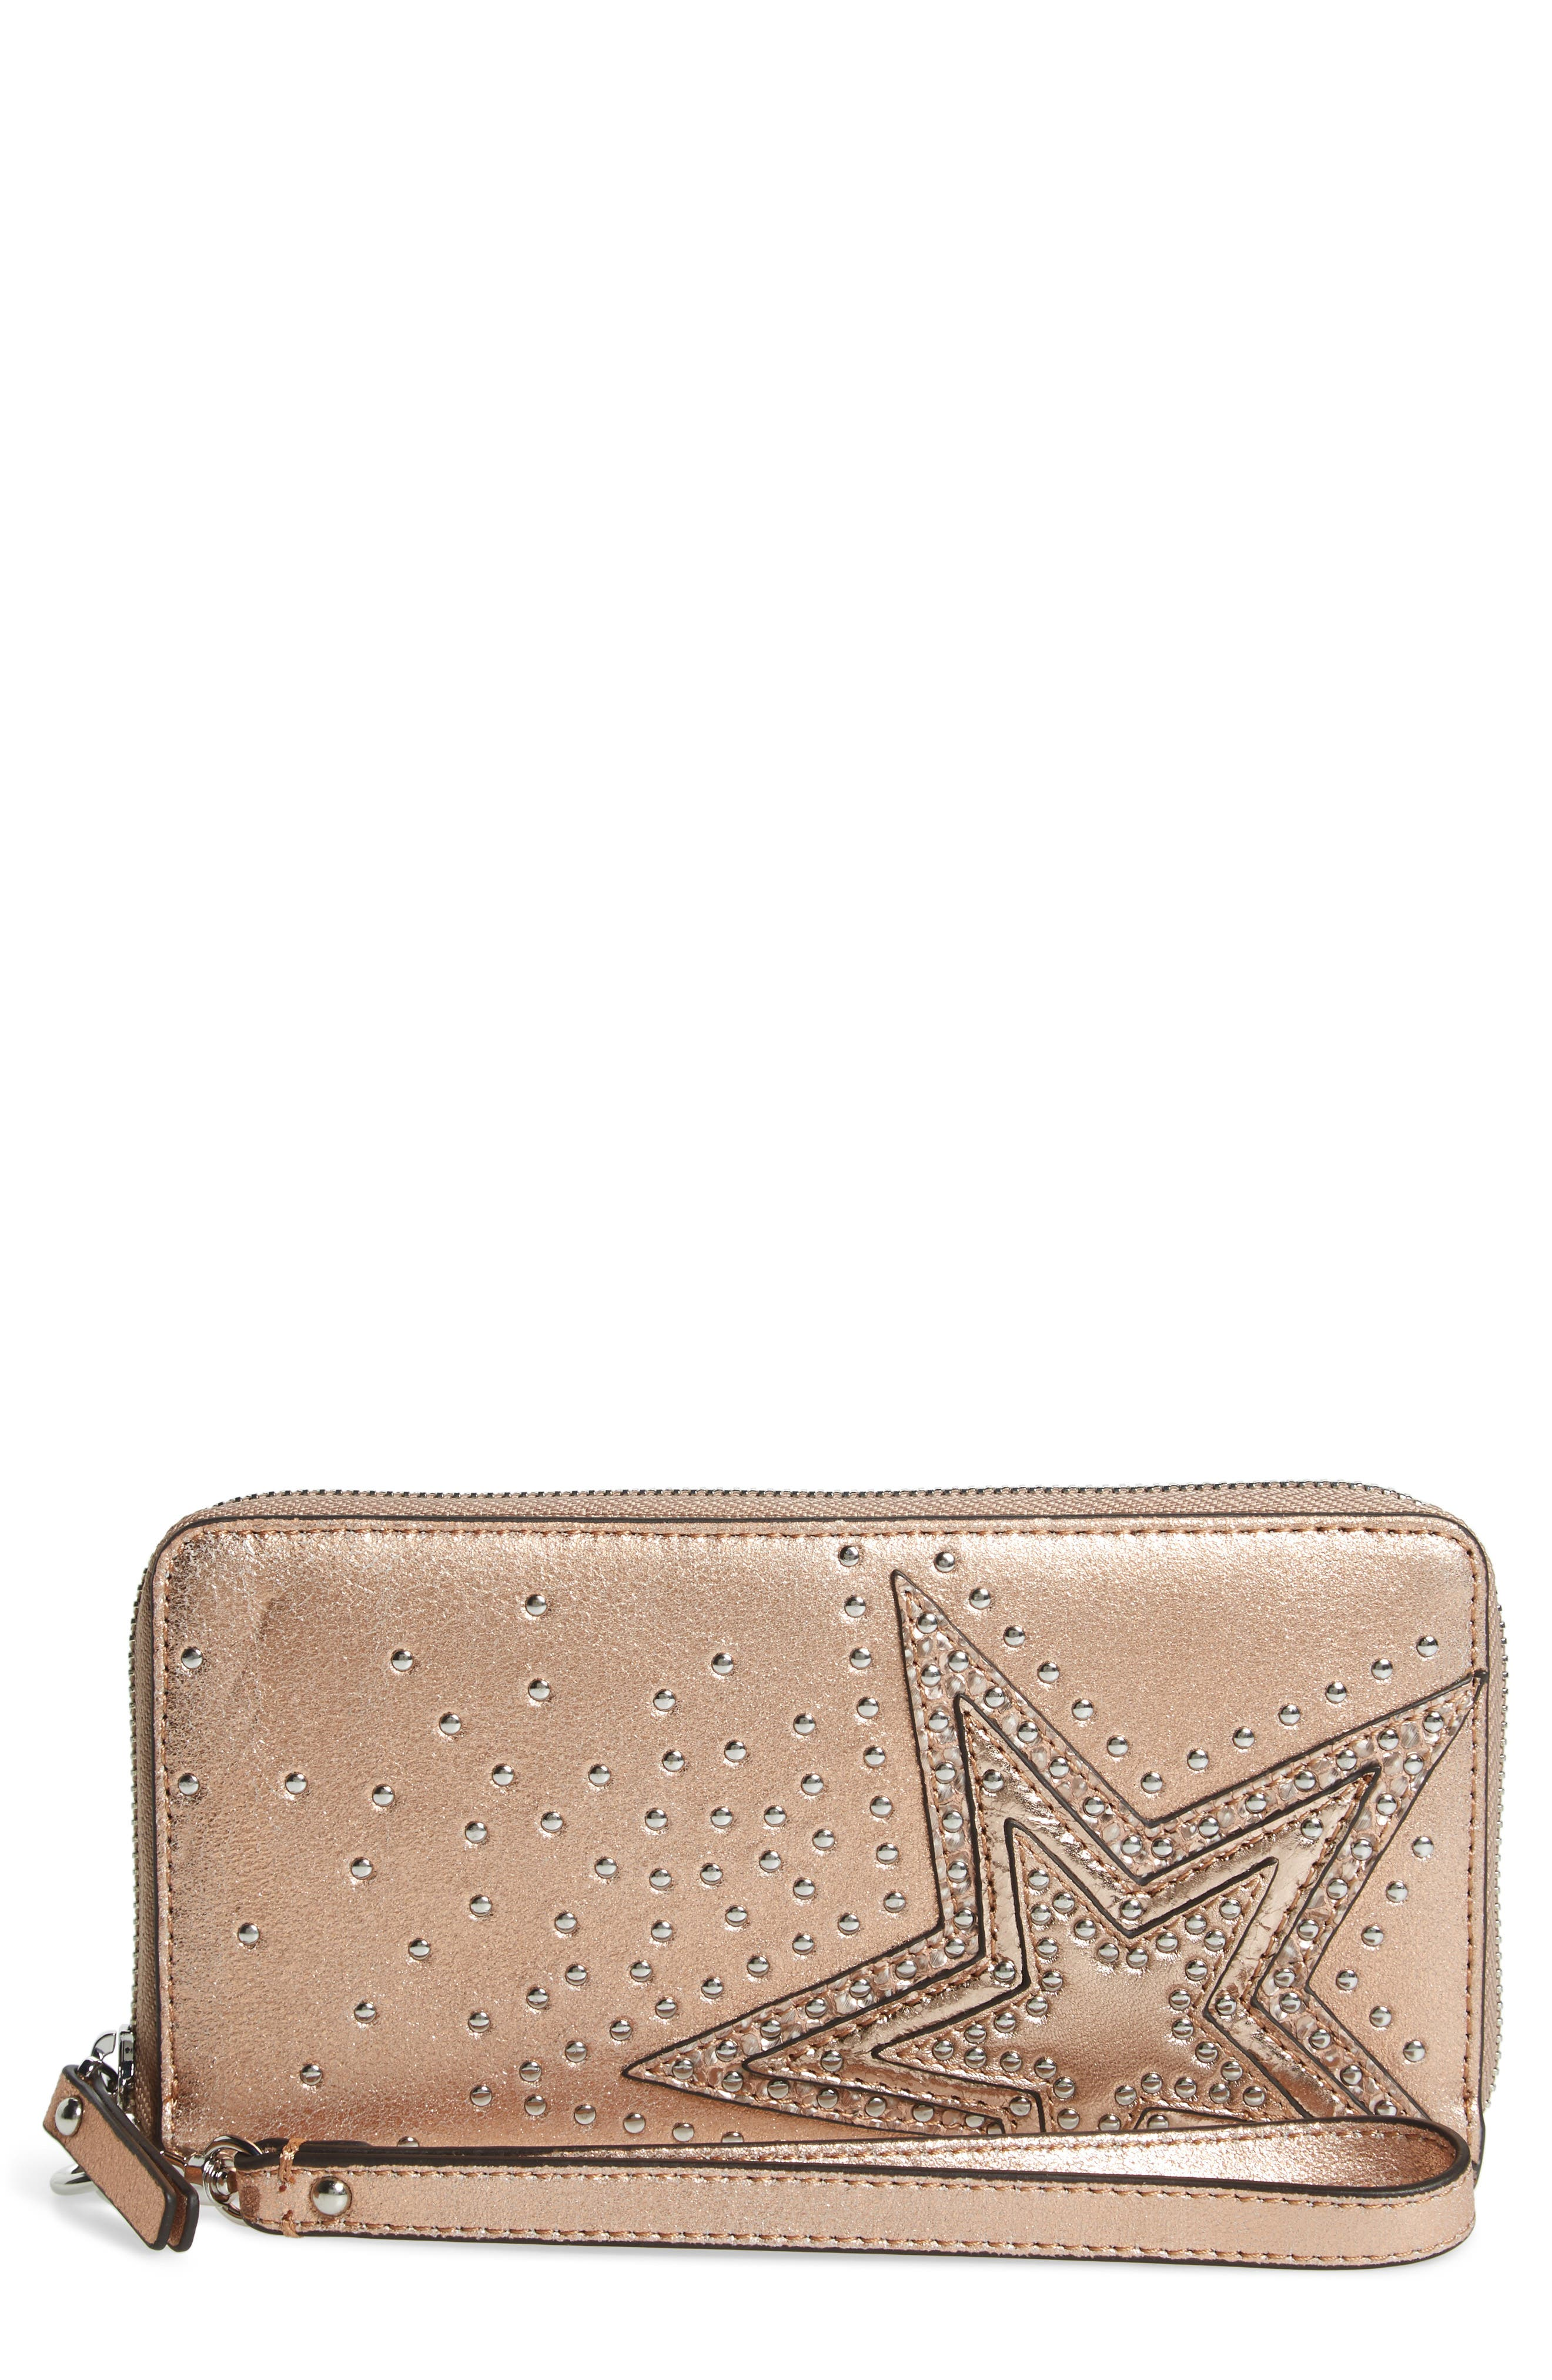 Vince Camuto Taz Leather Zip Around Wallet